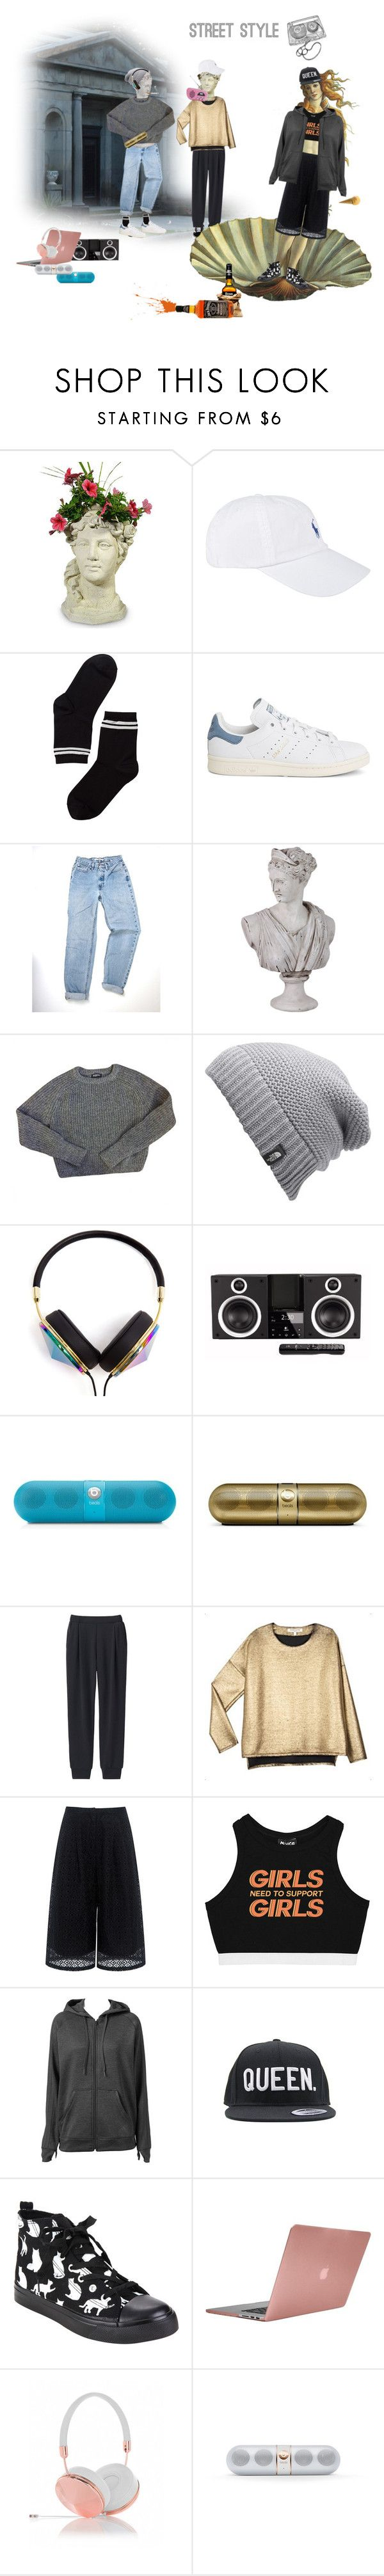 """""""Street style"""" by elisacipolla ❤ liked on Polyvore featuring Polo Ralph Lauren, Monki, adidas, Urban Trends Collection, American Apparel, The North Face, Frends, Elite, Beats by Dr. Dre and Uniqlo"""